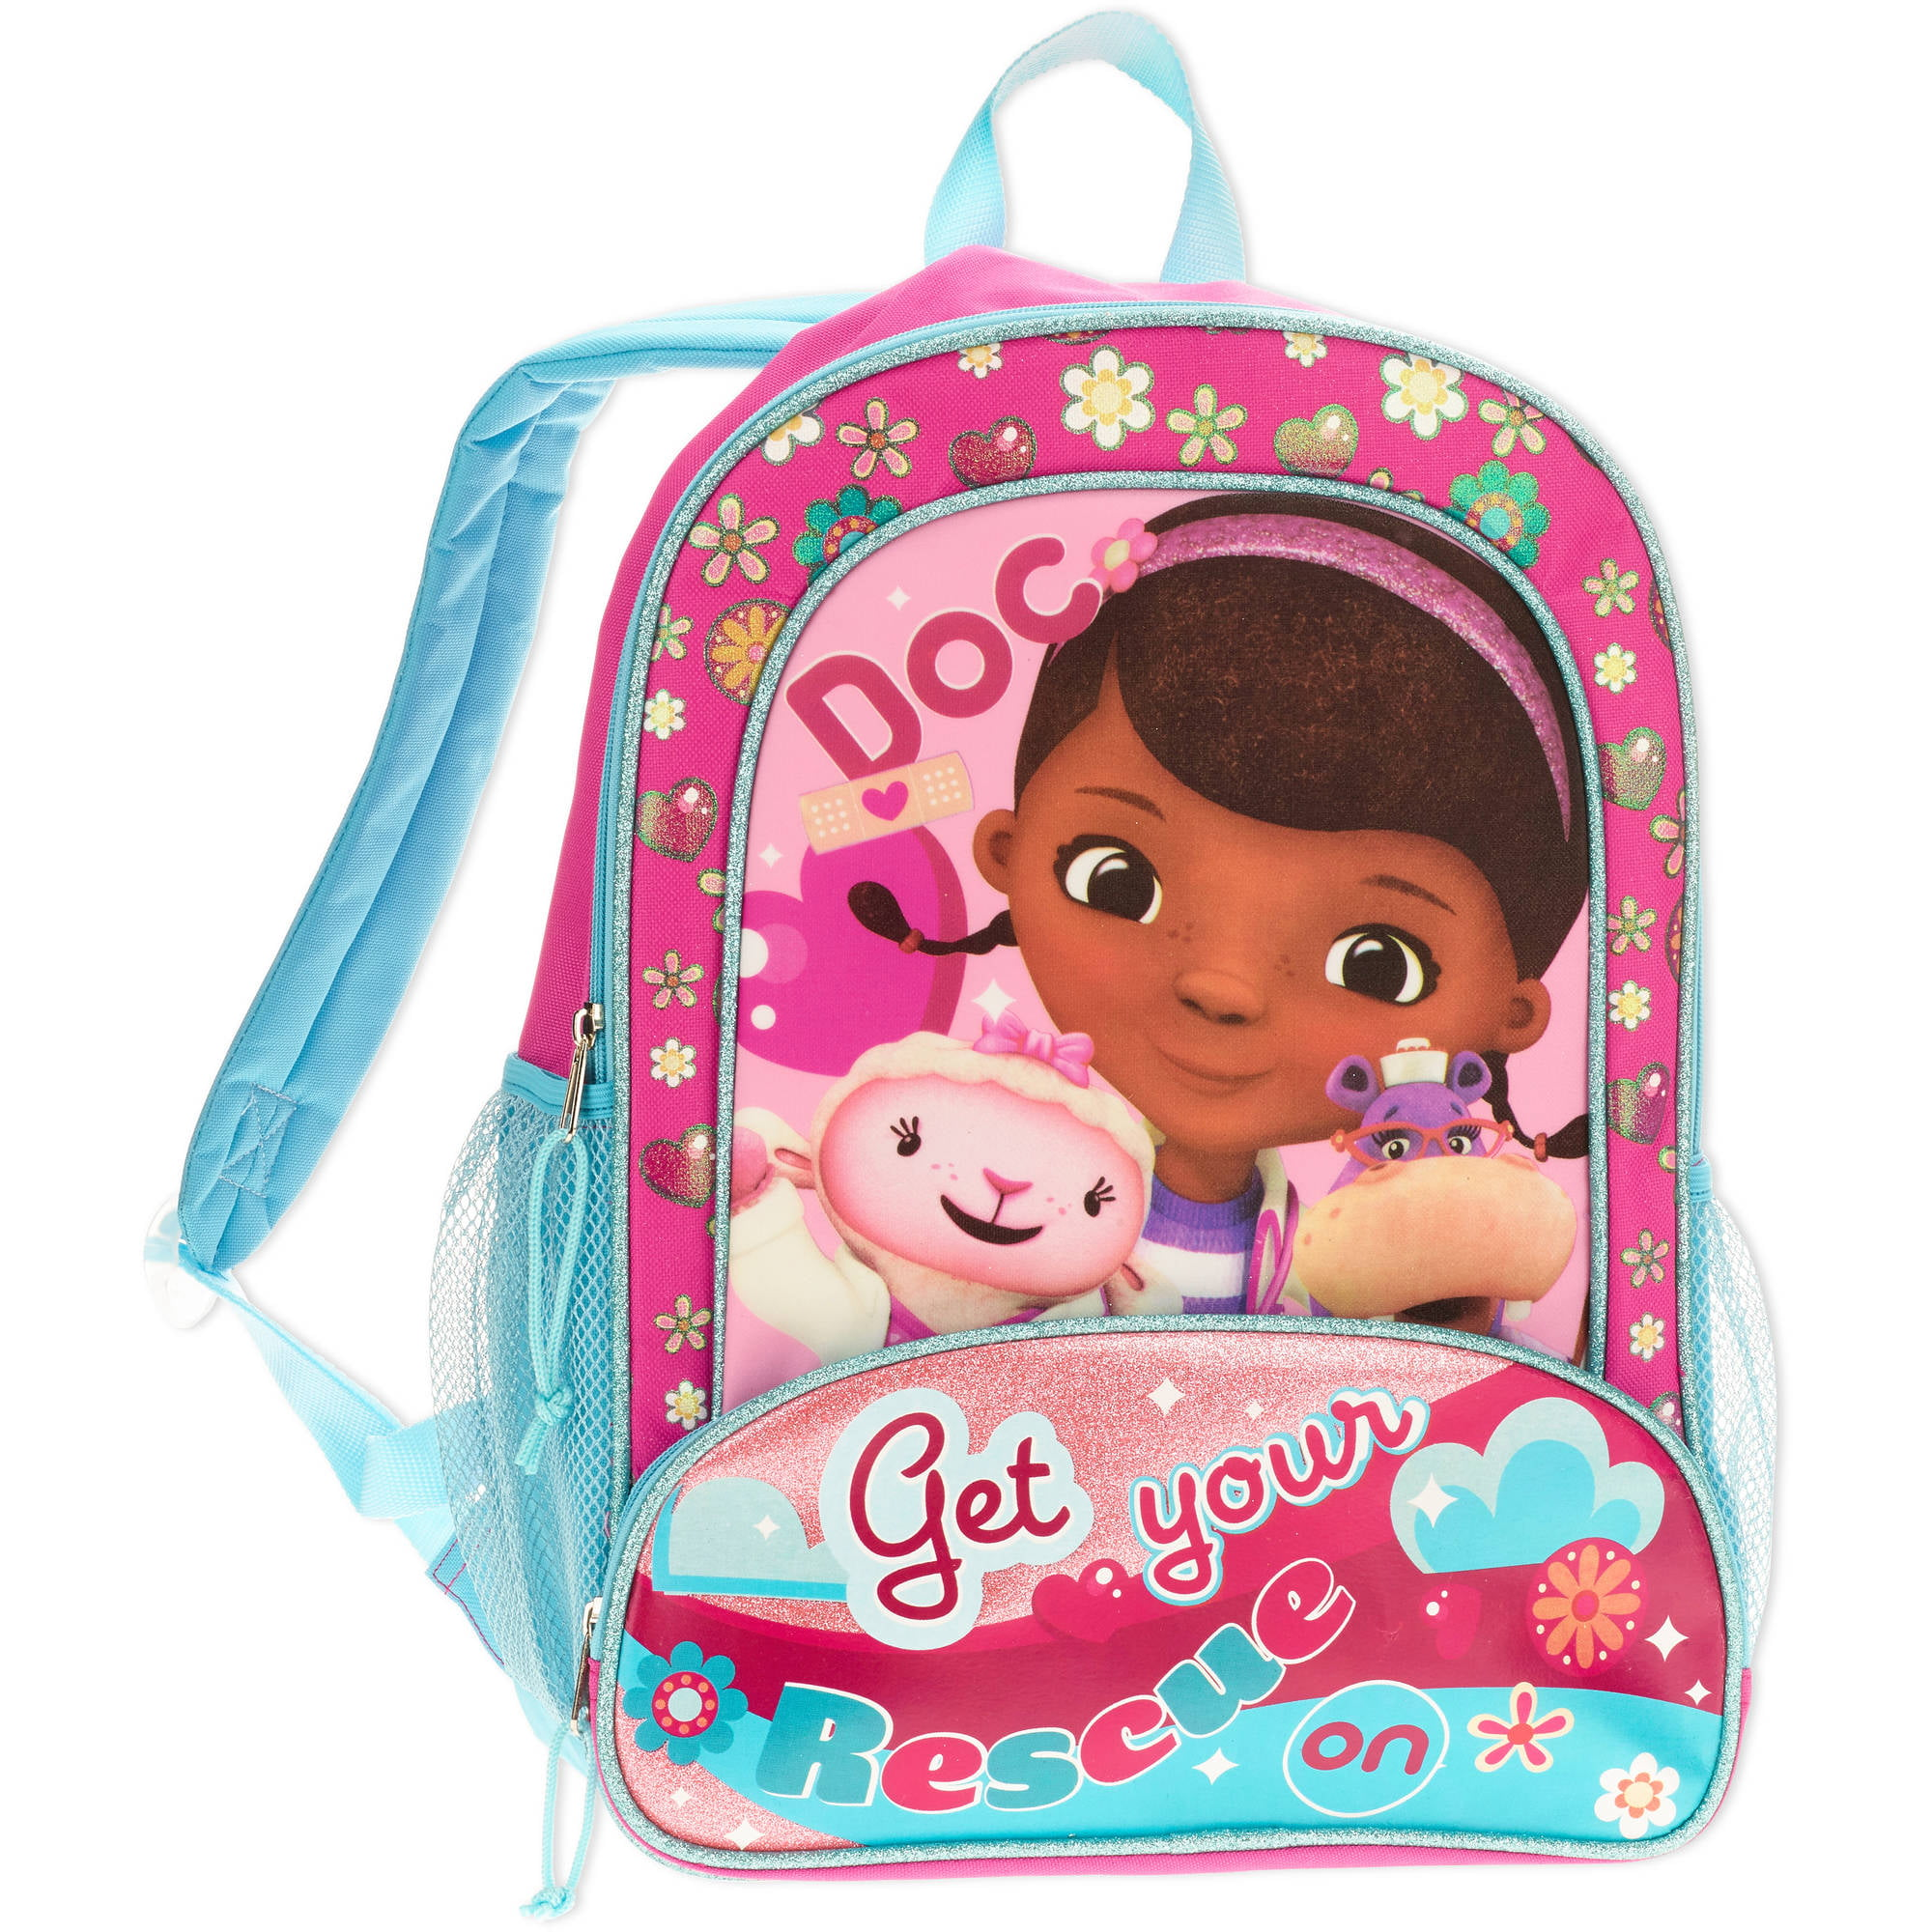 Personalized Disney Backpacks For Toddlers - Best Backpacks 2017